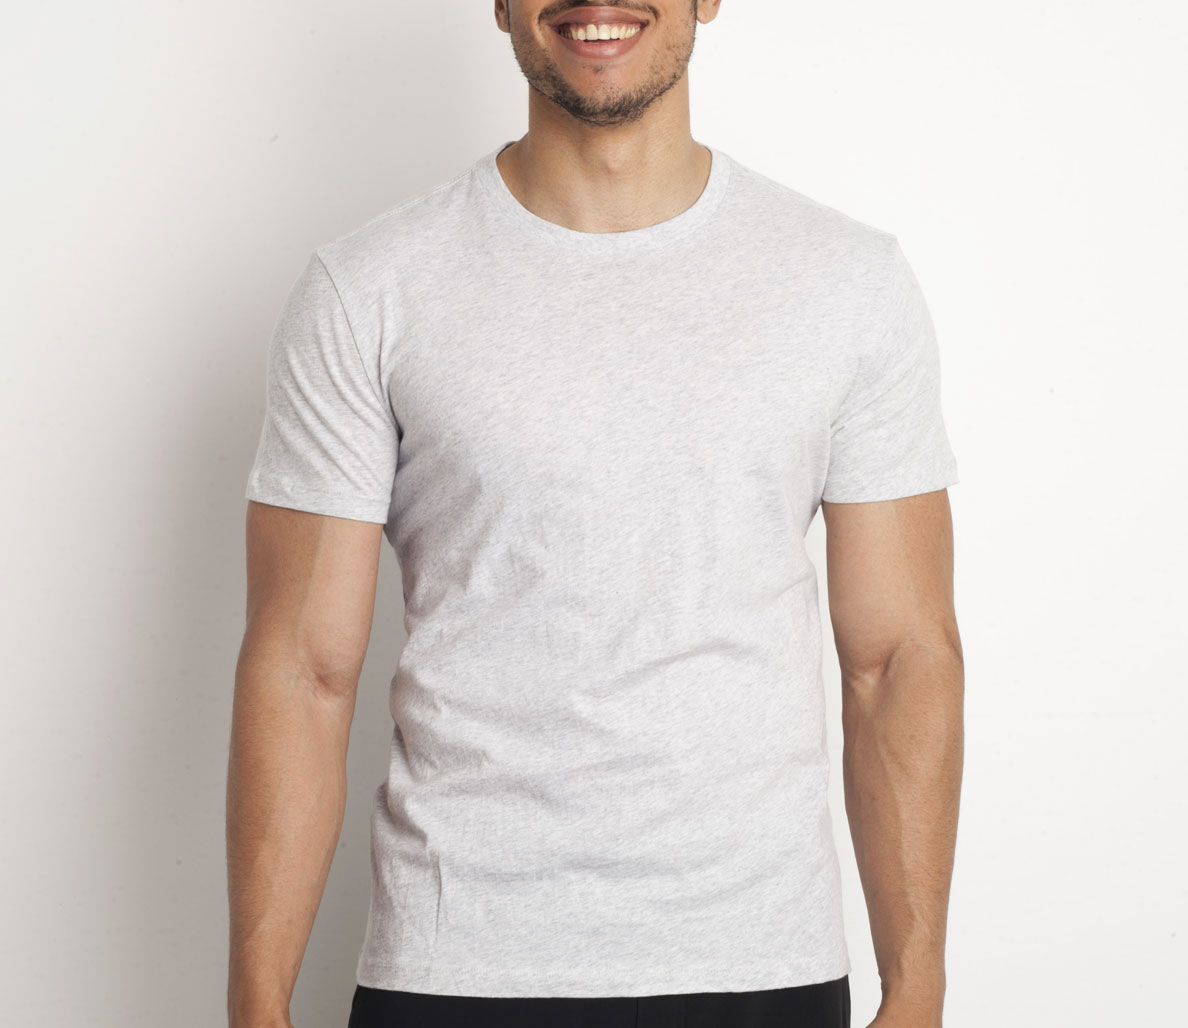 17760e4321d The Essential T. Every guy has his go-to easy t-shirt. Well here at Men s  Fitness ...